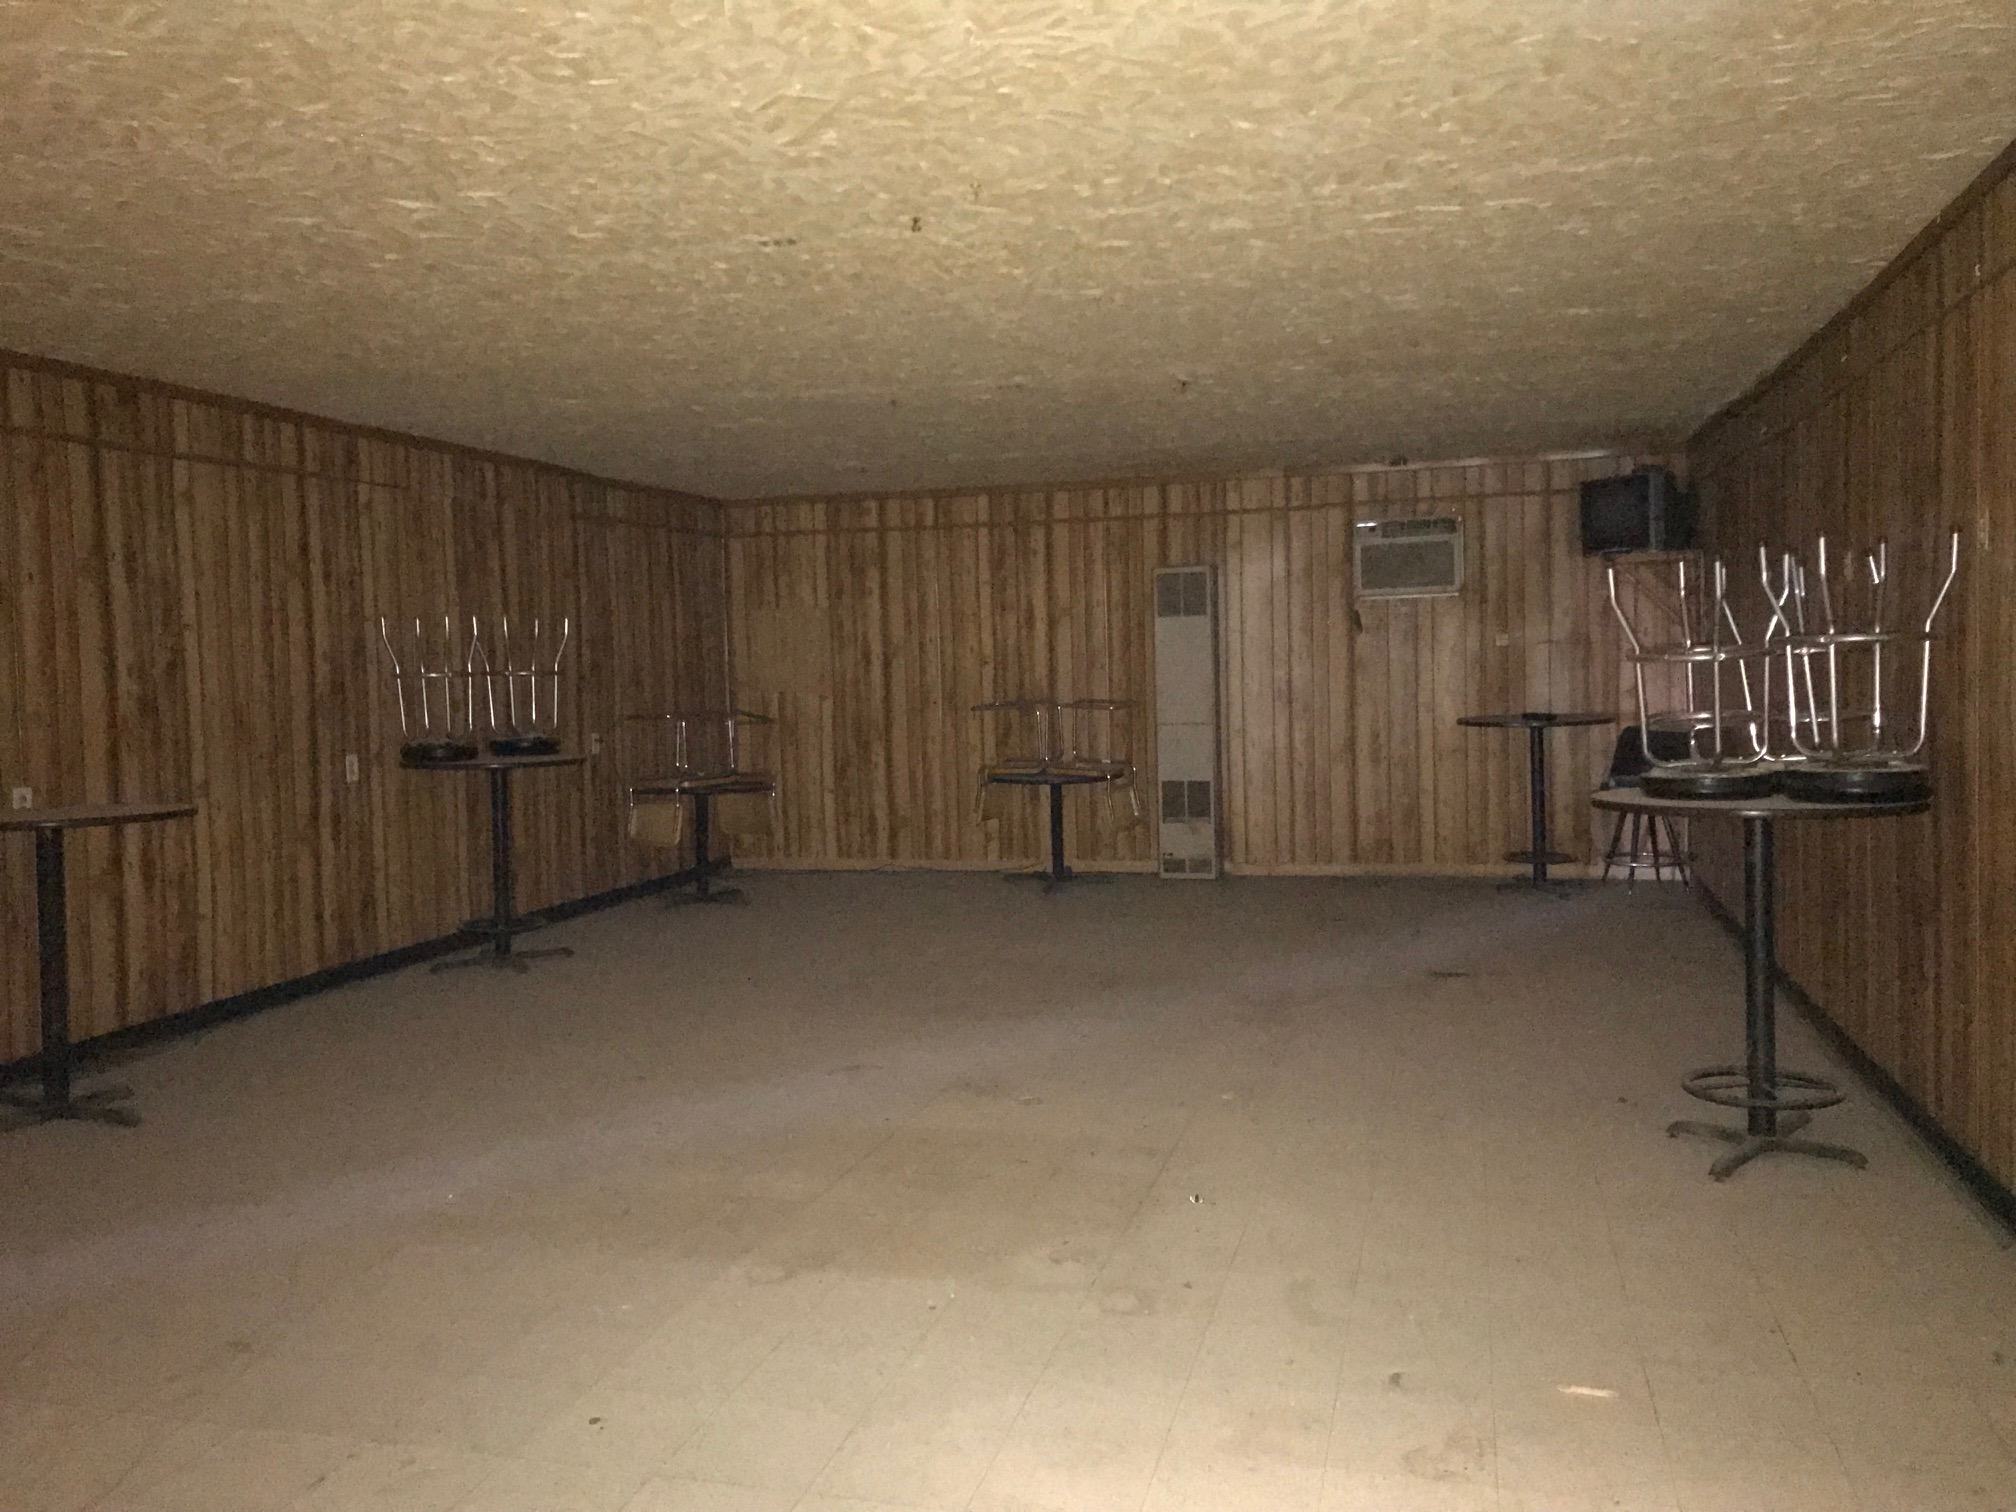 dance area or dining area